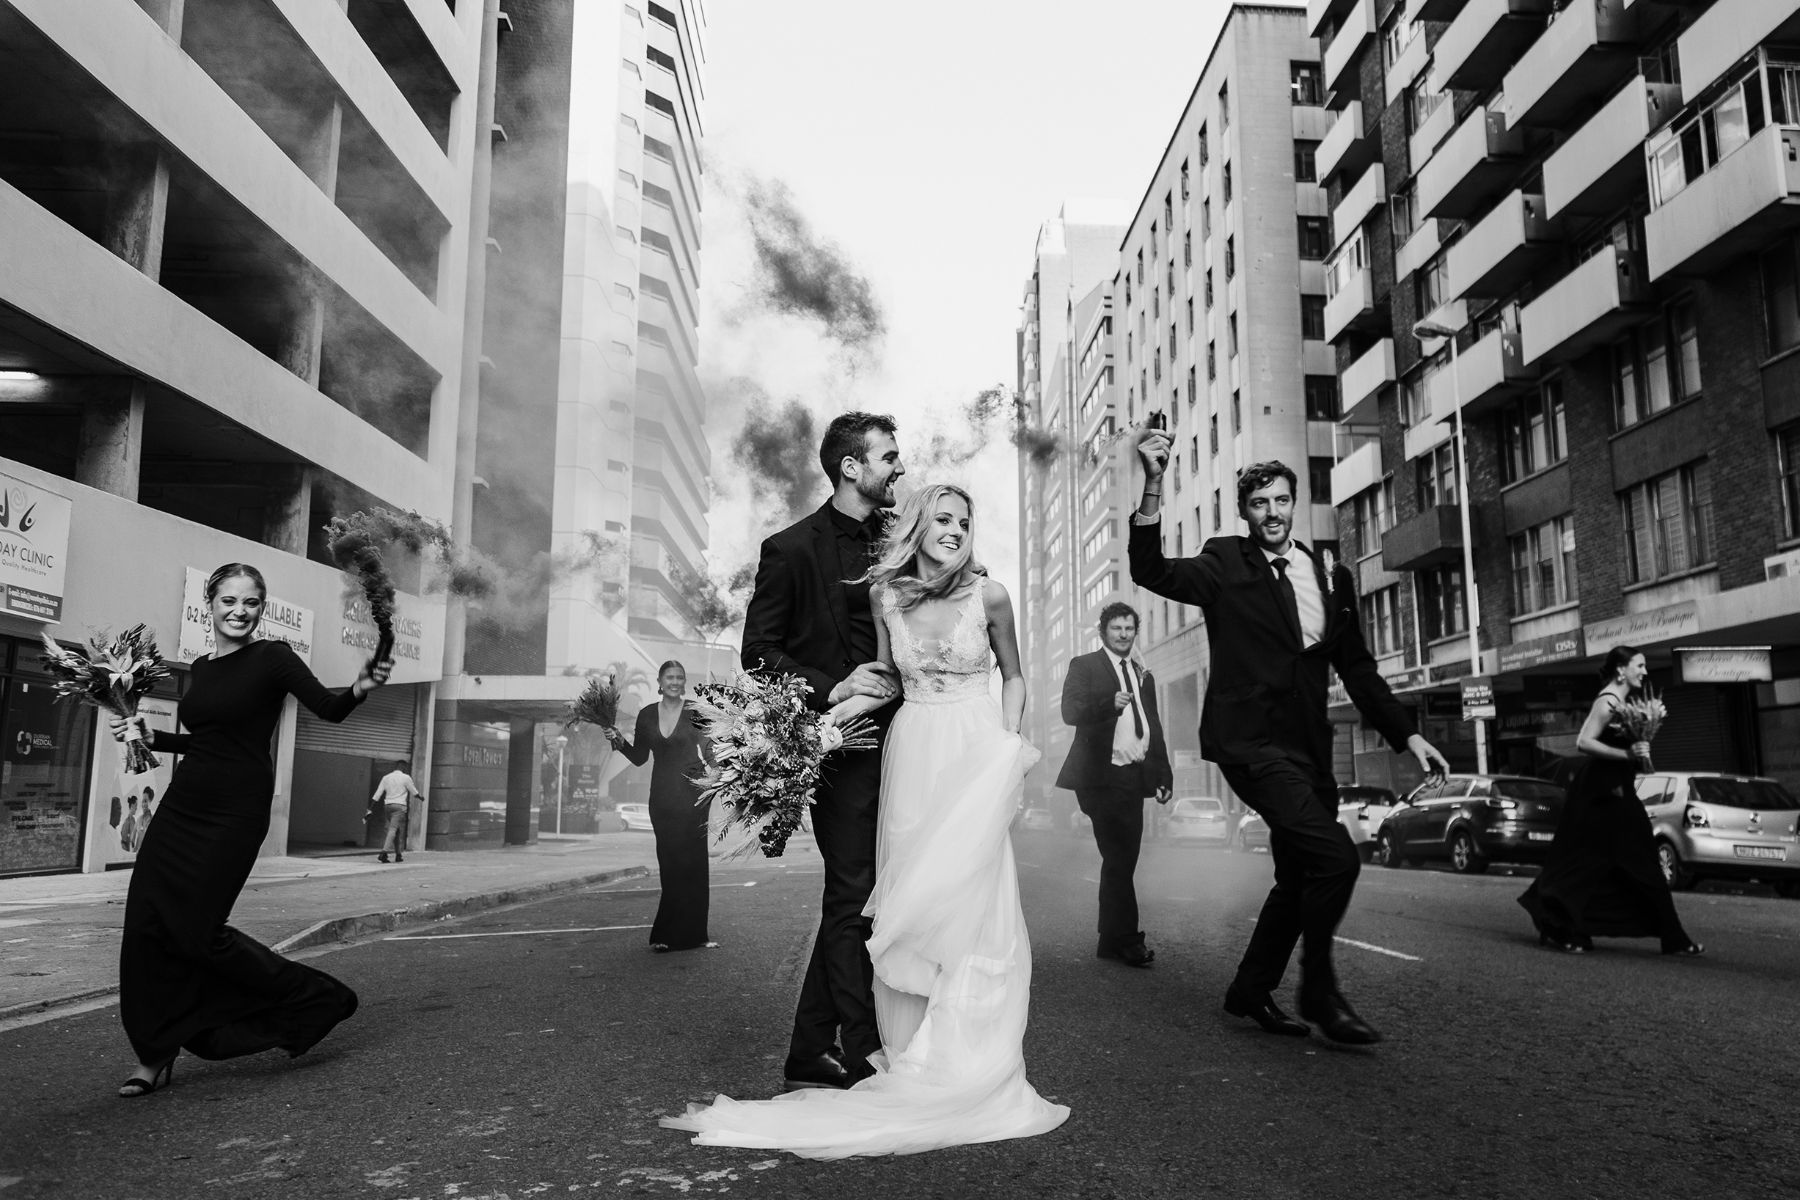 Black and white documentary style image of bride and groom in city street whilst bridal party surround them with smoke bombs